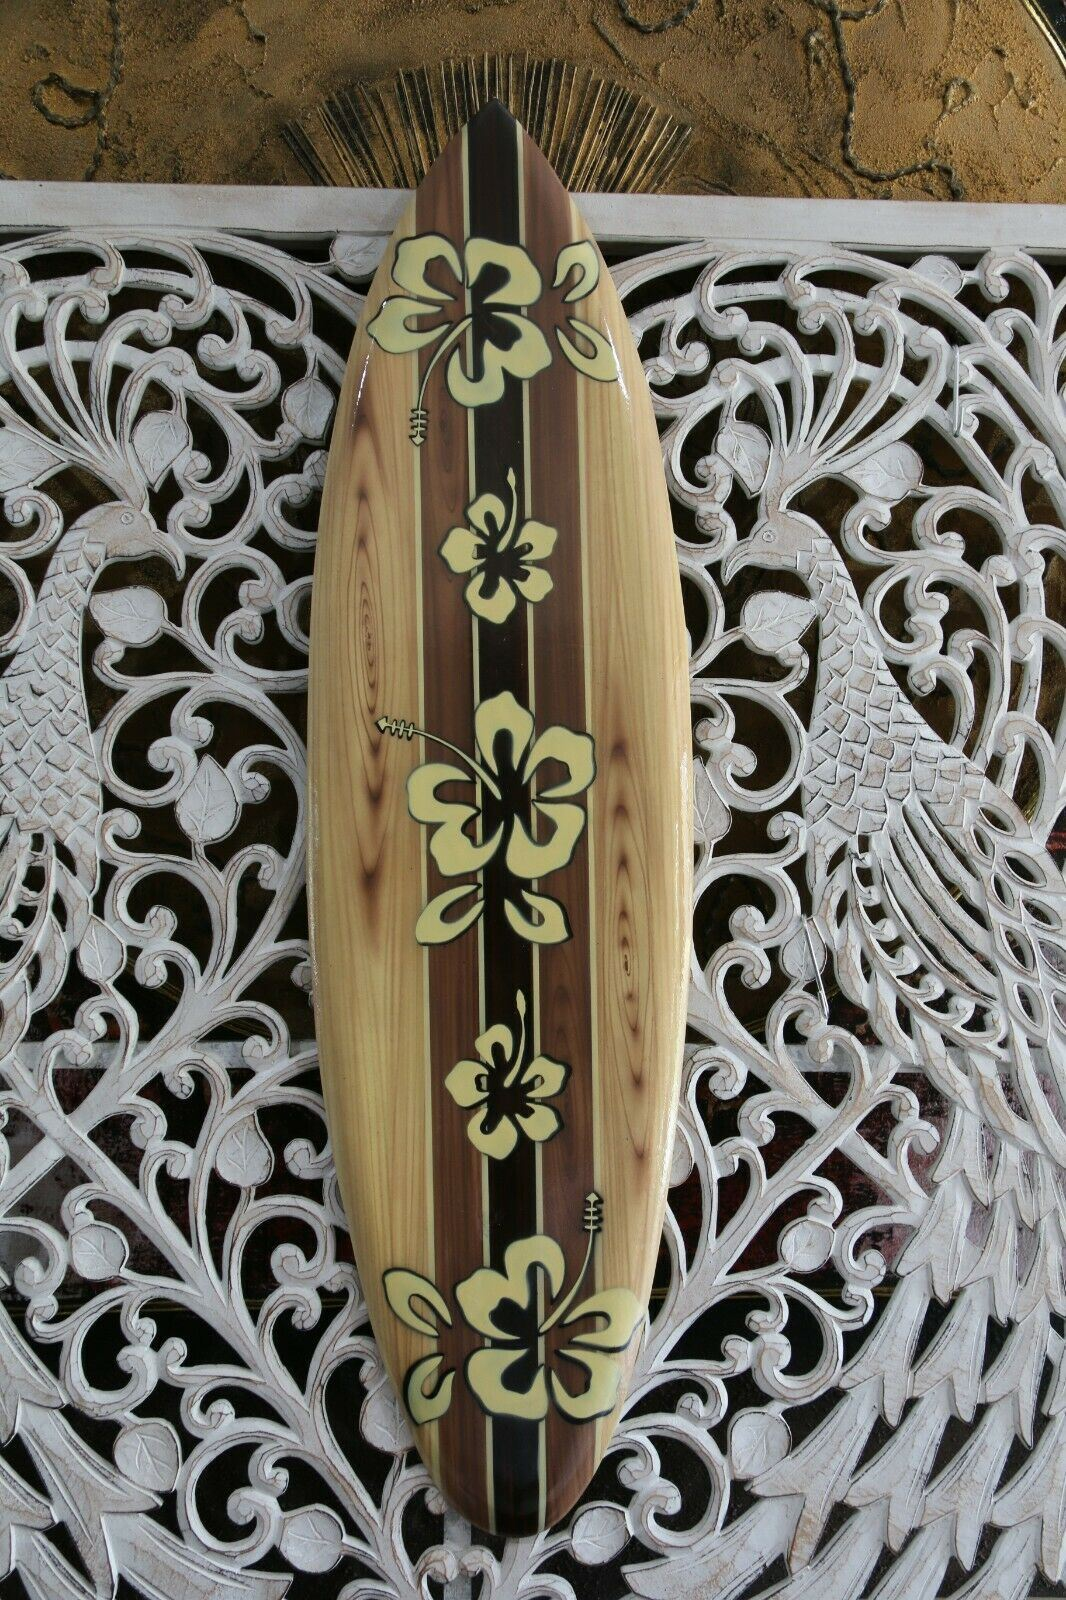 NEW Bali Handmade Woodie Surfboard Wall Decor 80cm - Bali Surfboard Wall Art